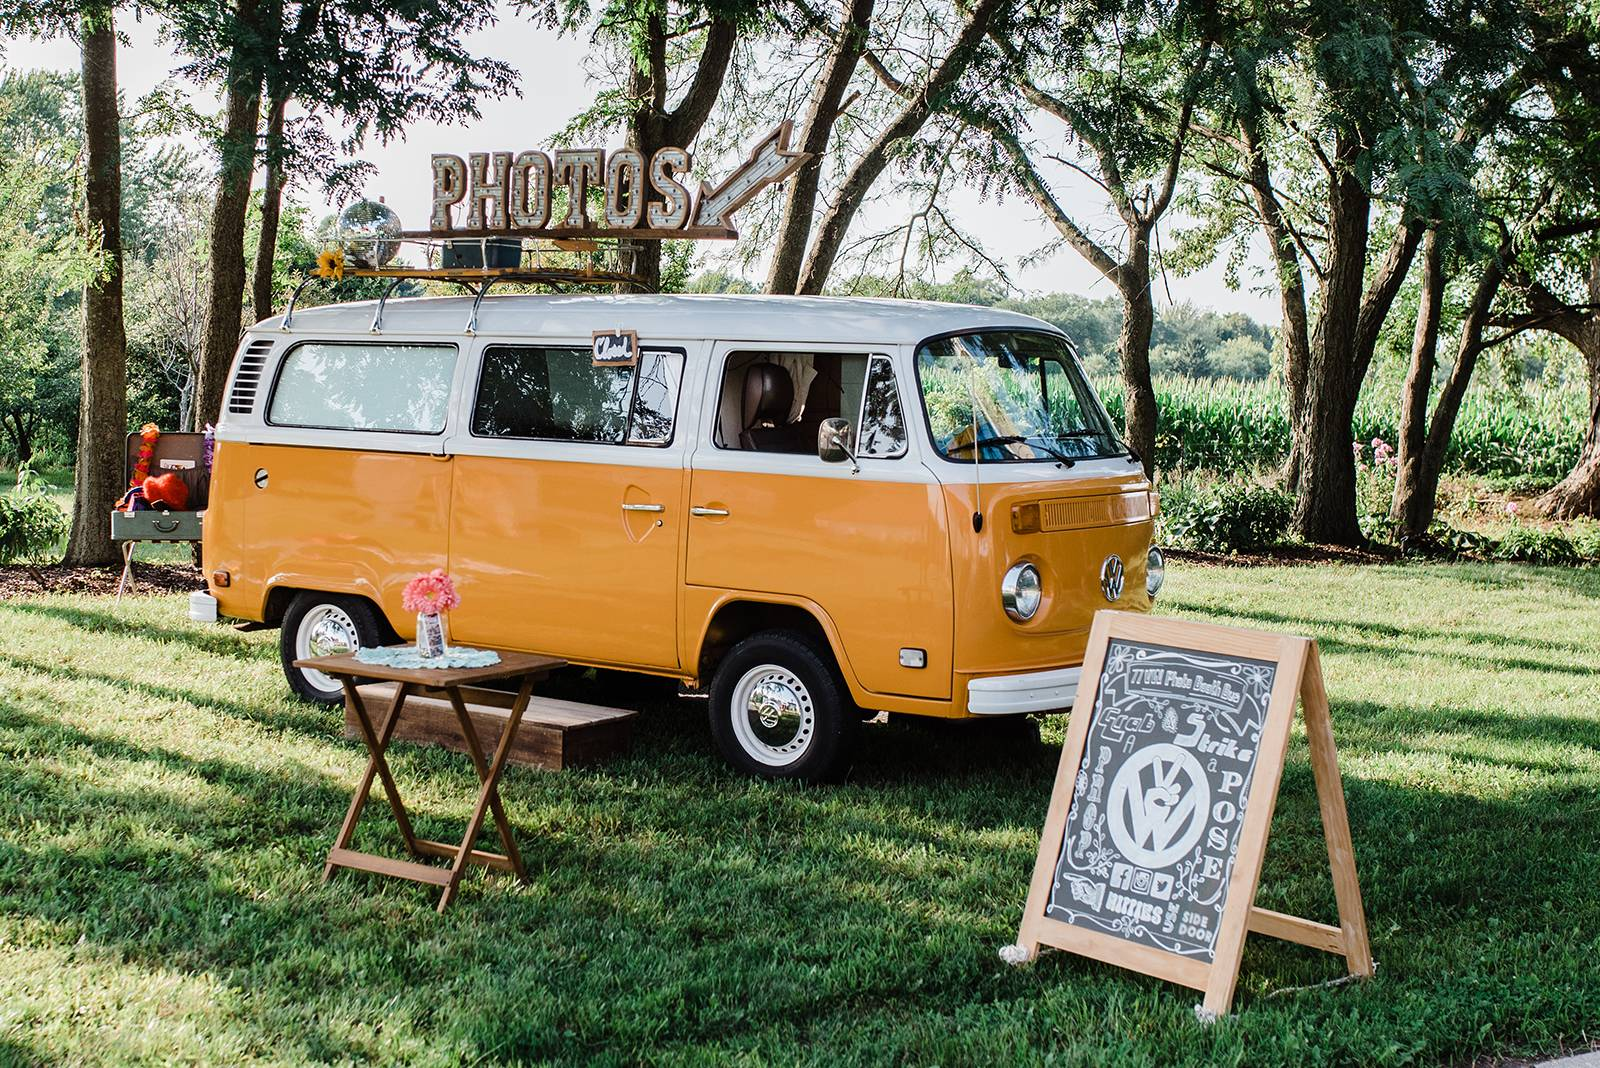 vintage hippie woodstock vw photo booth bus